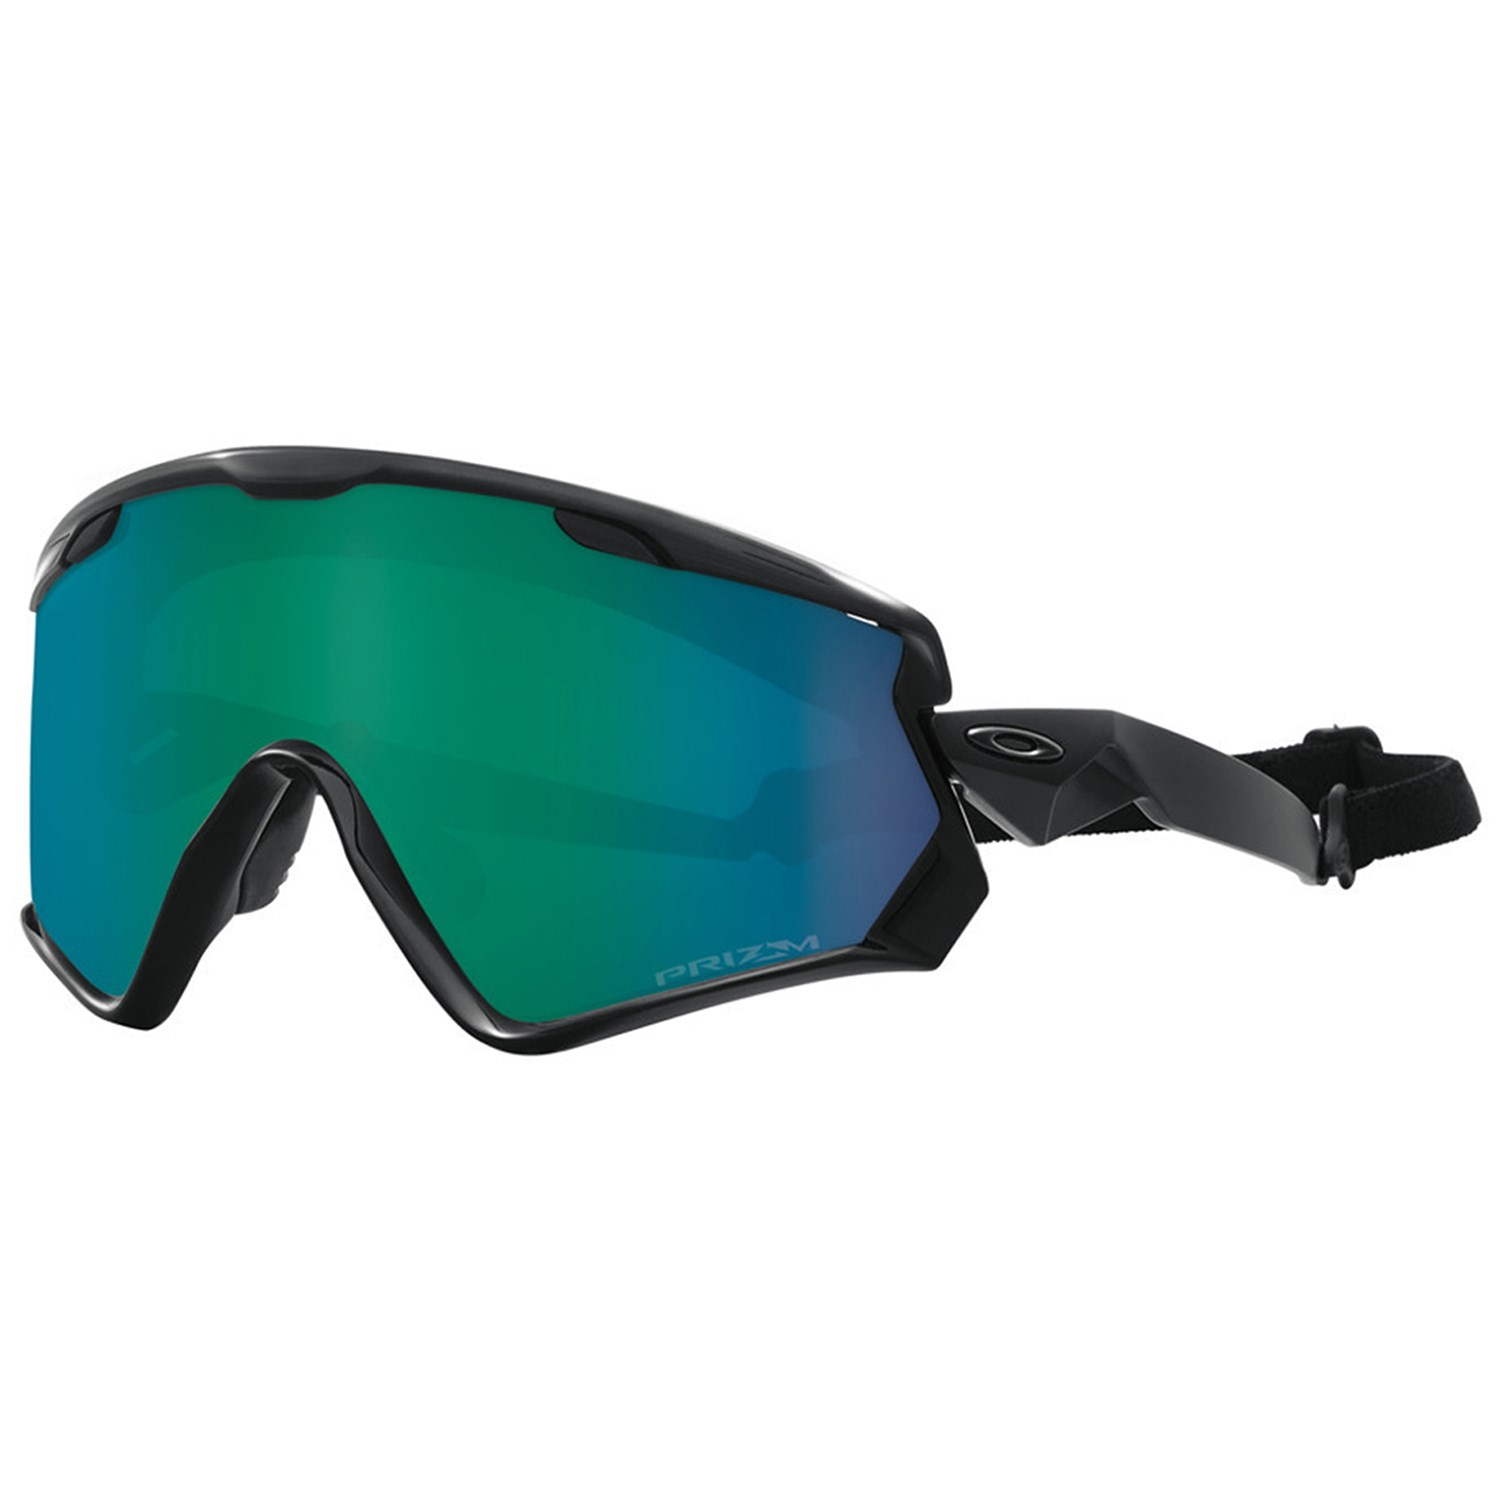 Oakleys Sunglasses  oakley wind jacket 2 0 sunglasses evo